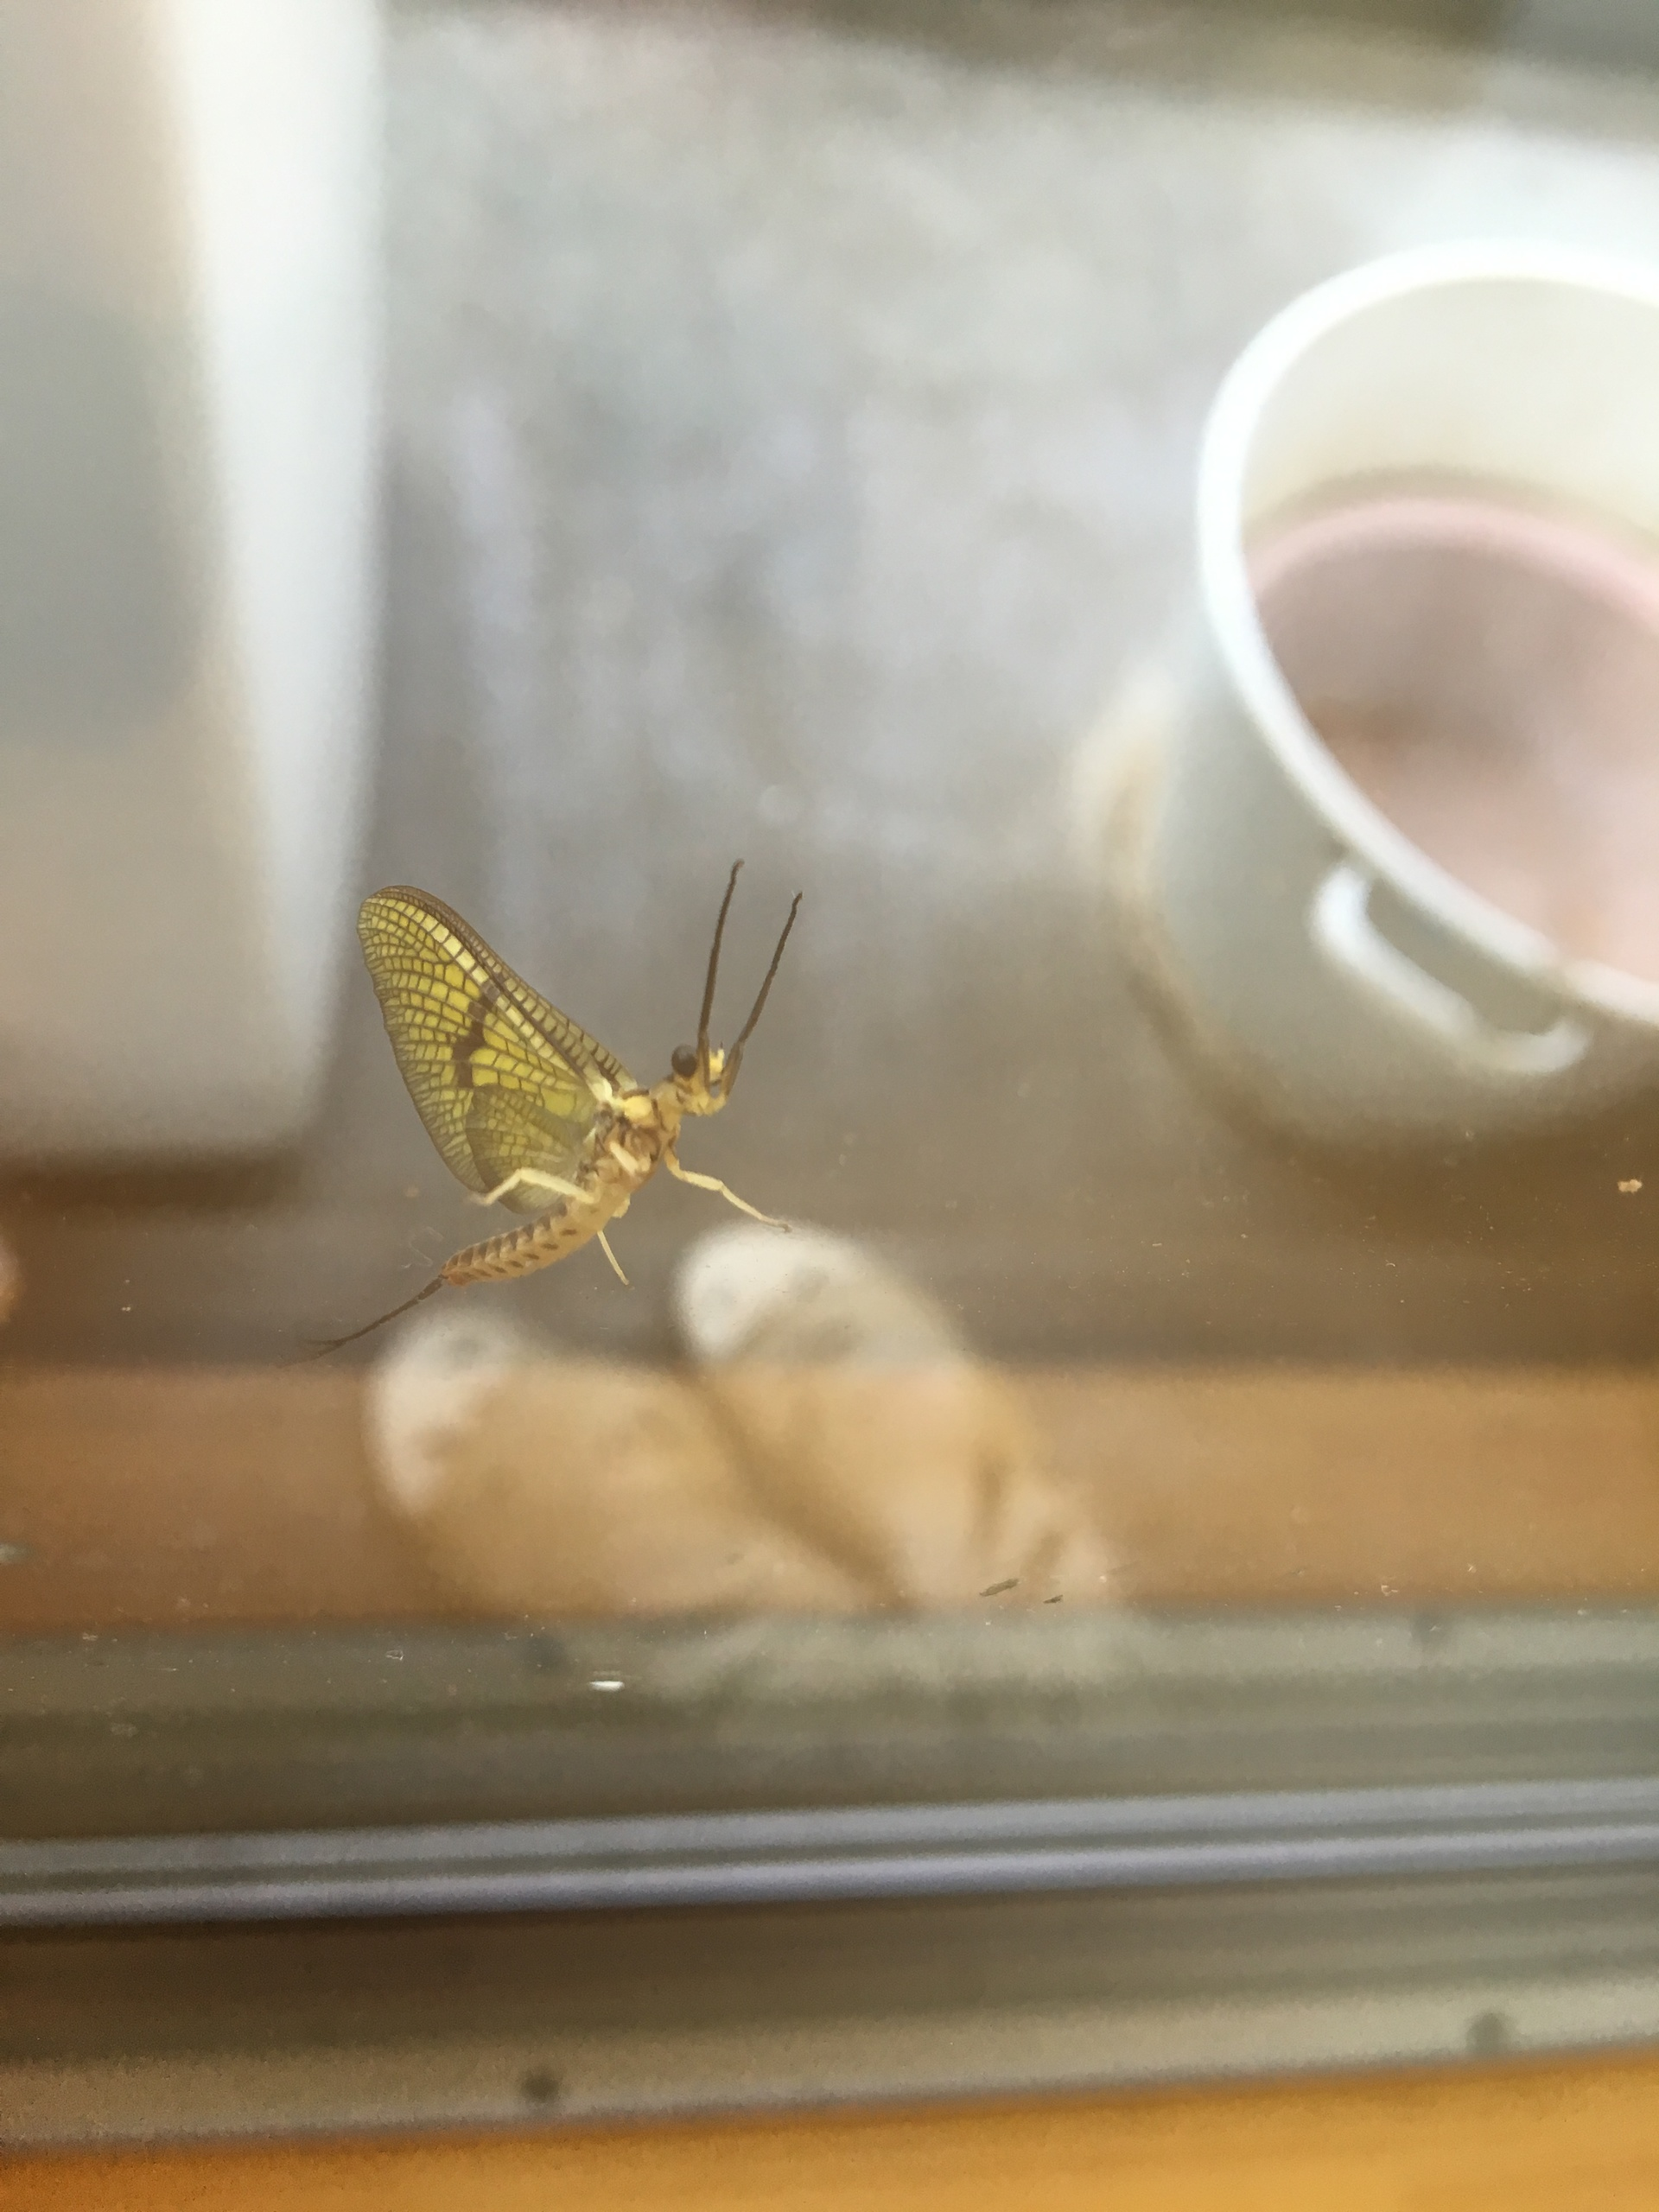 Mayfly perched on the window